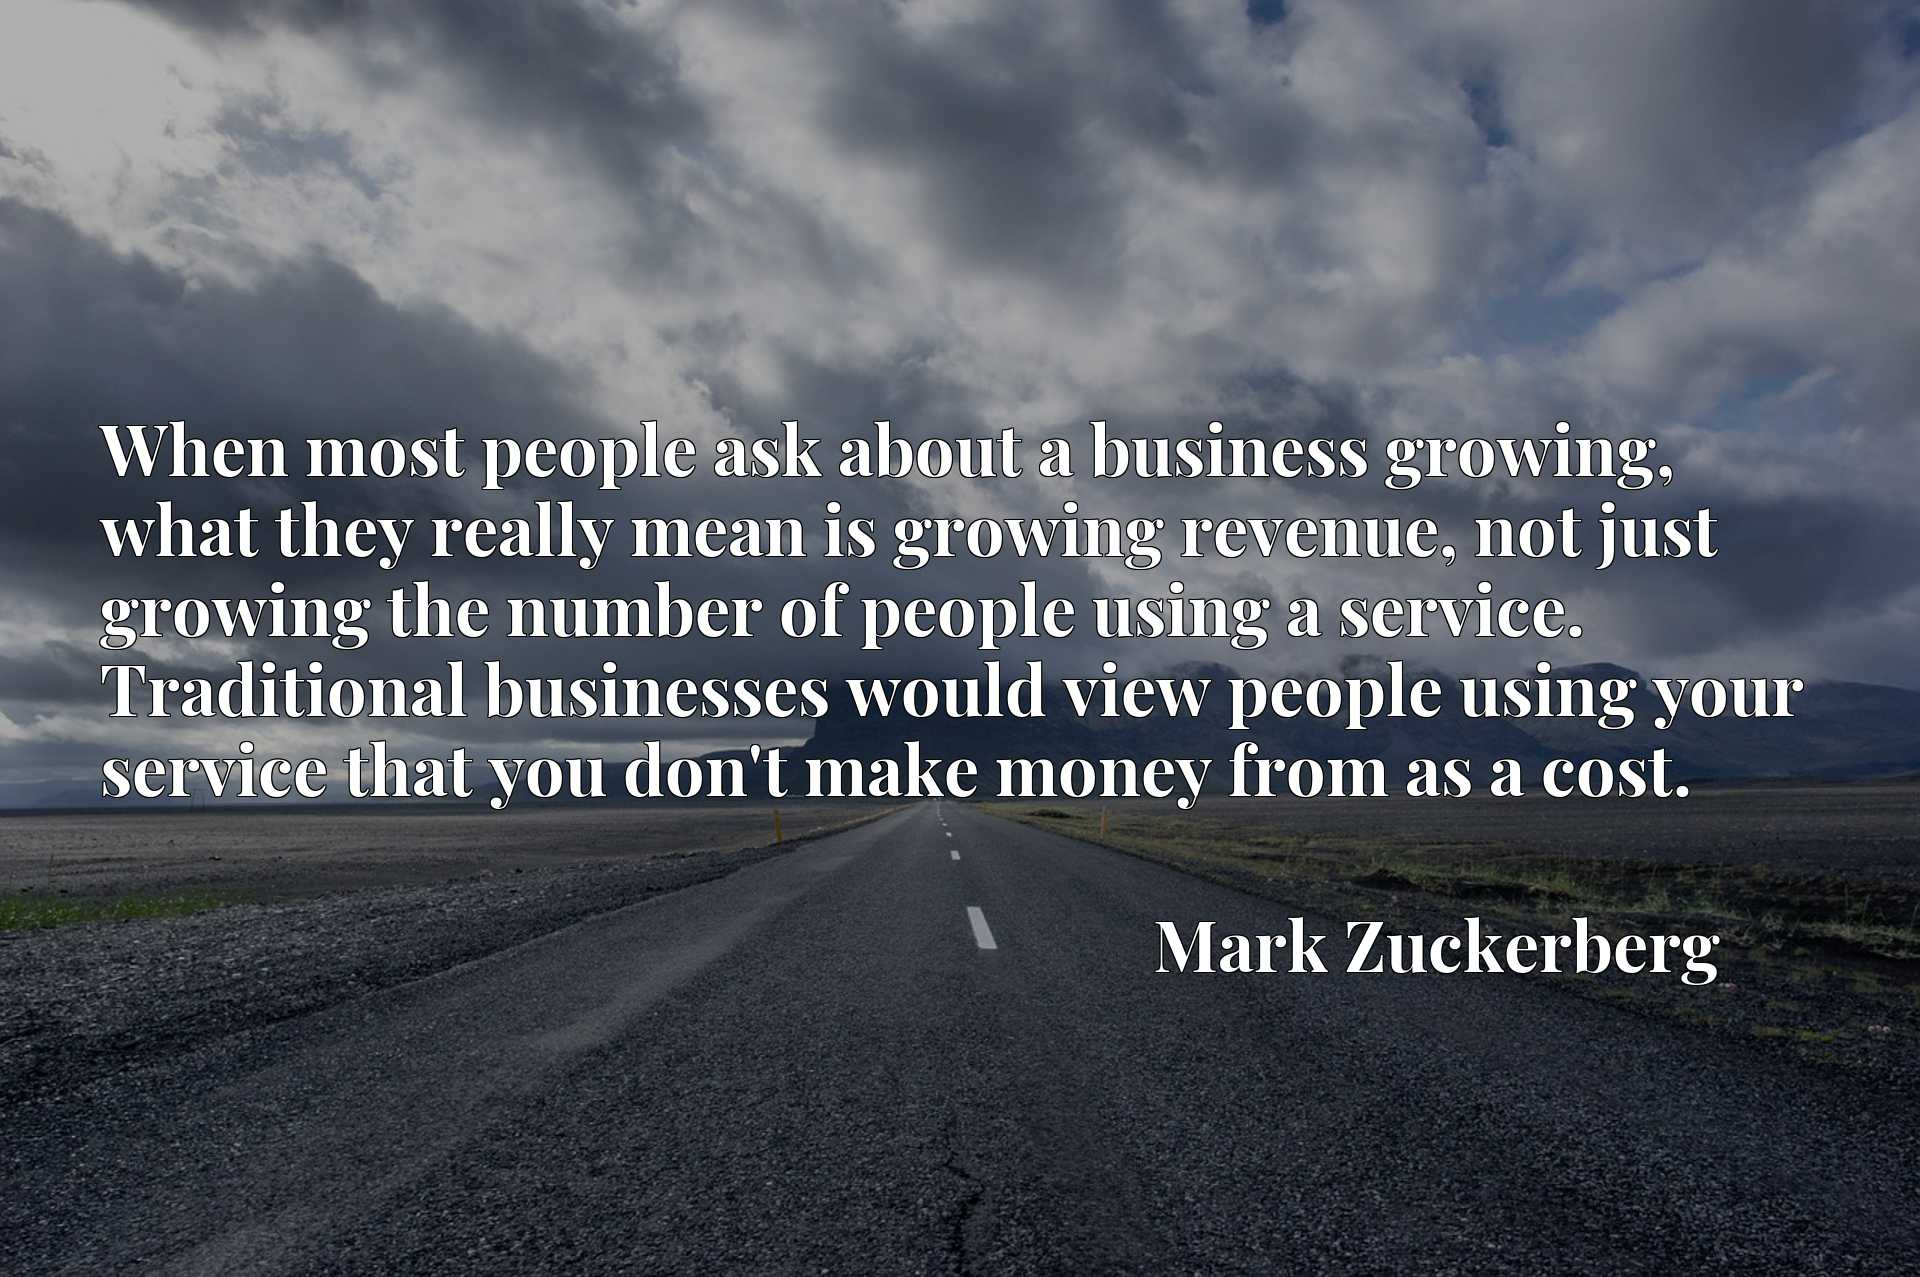 When most people ask about a business growing, what they really mean is growing revenue, not just growing the number of people using a service. Traditional businesses would view people using your service that you don't make money from as a cost.